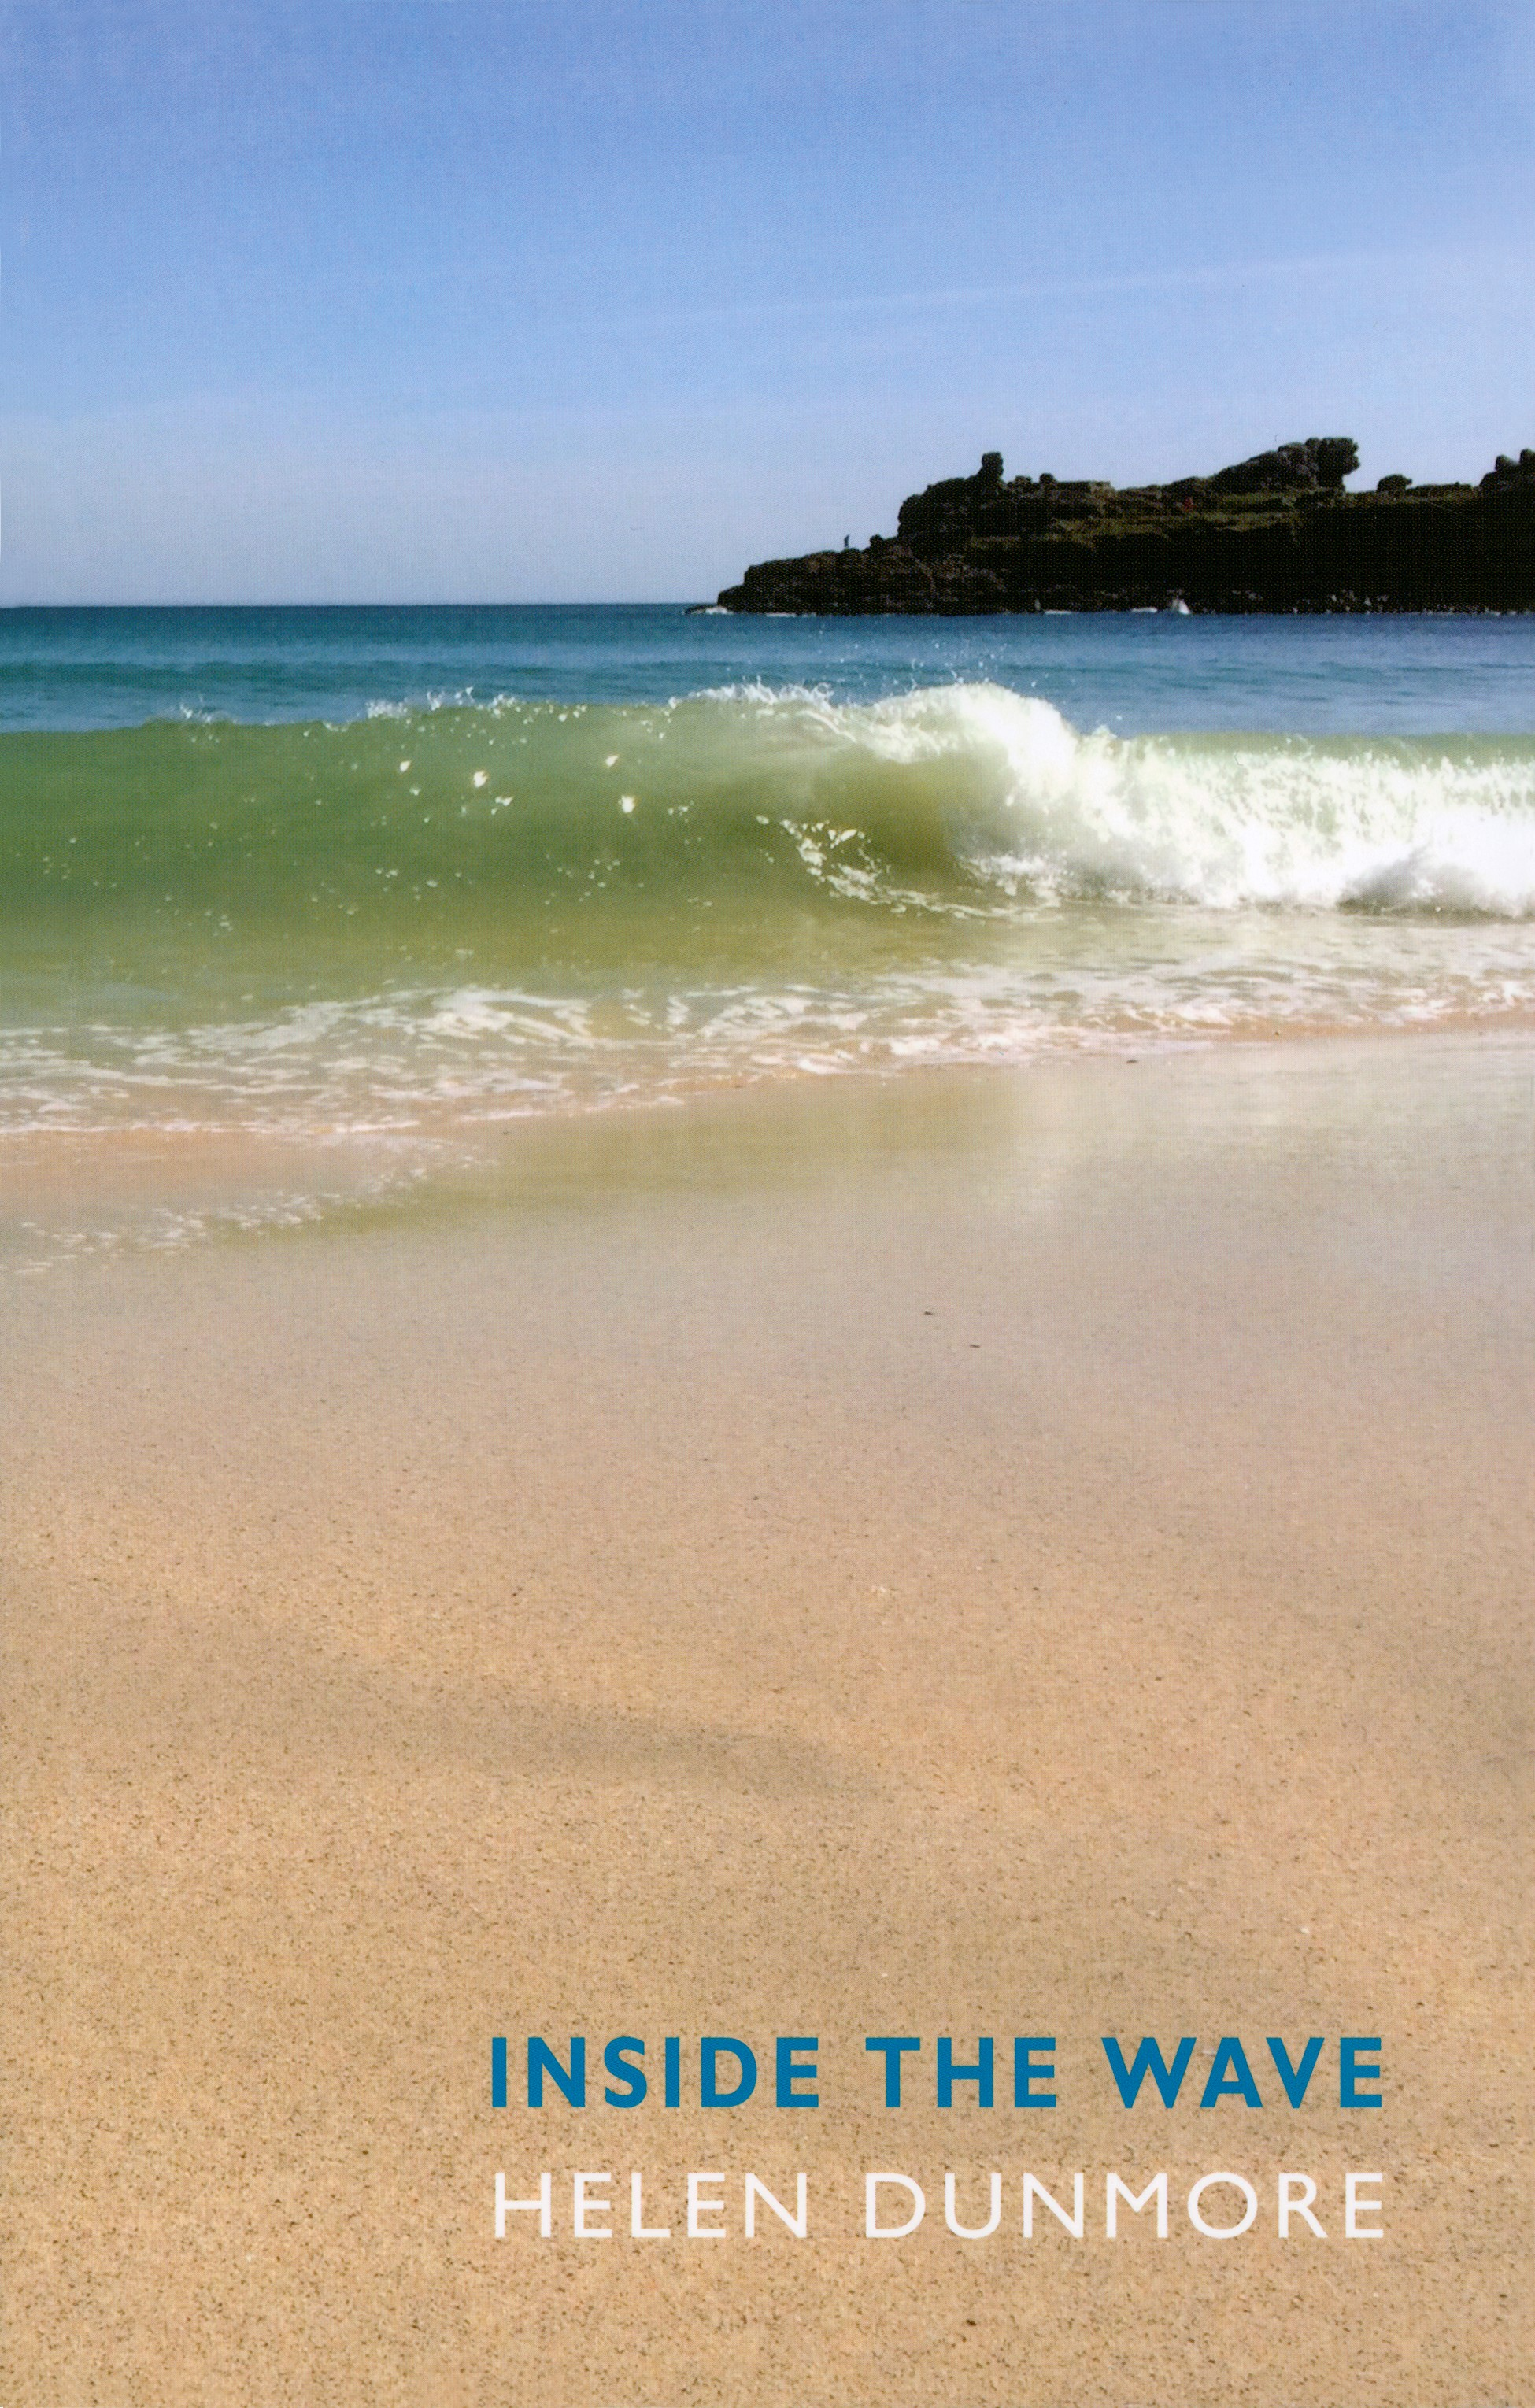 Inside The Wave by Helen Dunmore (Costa Book Awards)